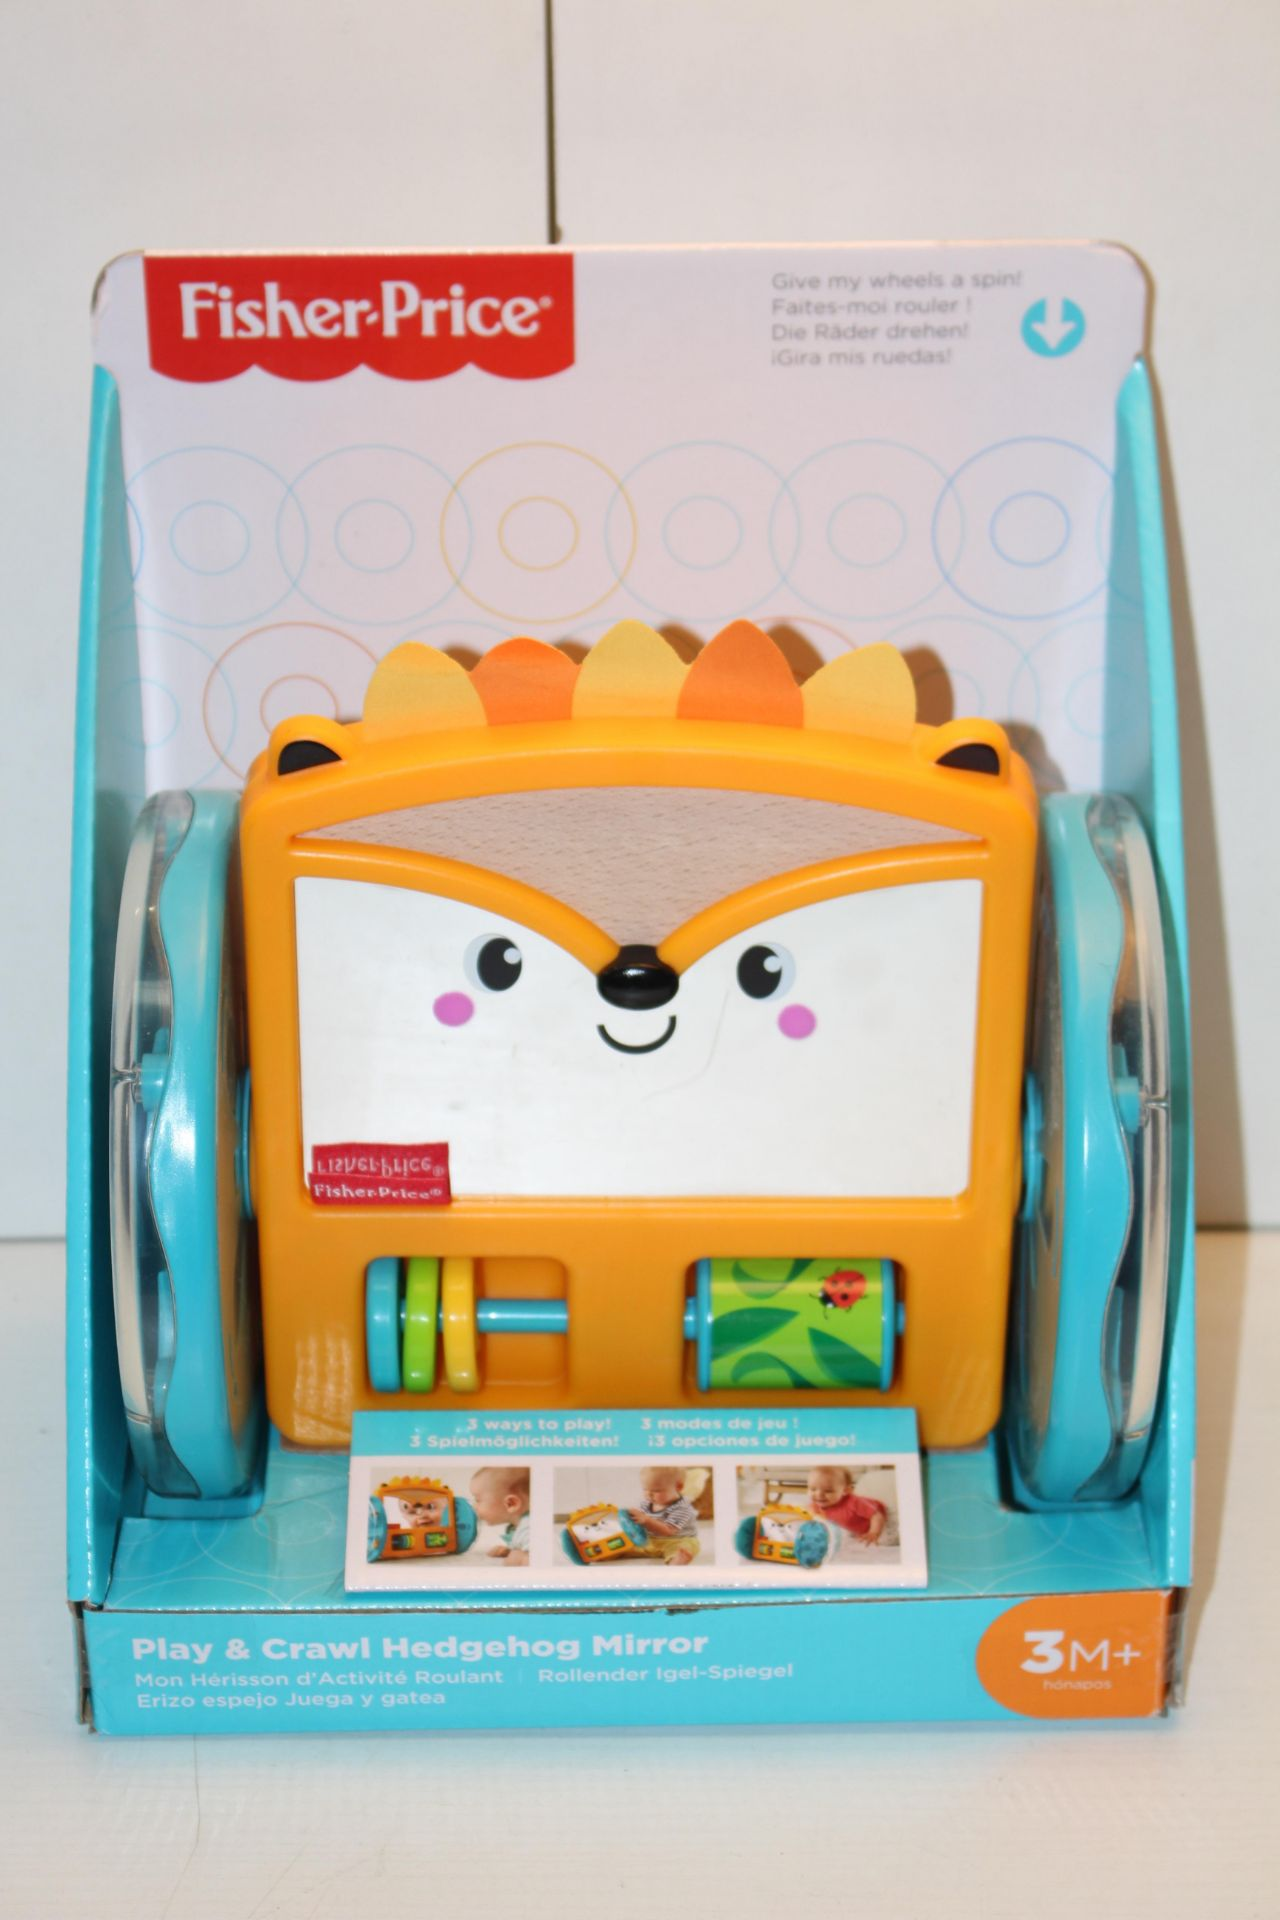 BOXED FISHER PRICE PLAY & CRAWL HEDGEHOG MIRROR RRP £14.99Condition ReportAppraisal Available on